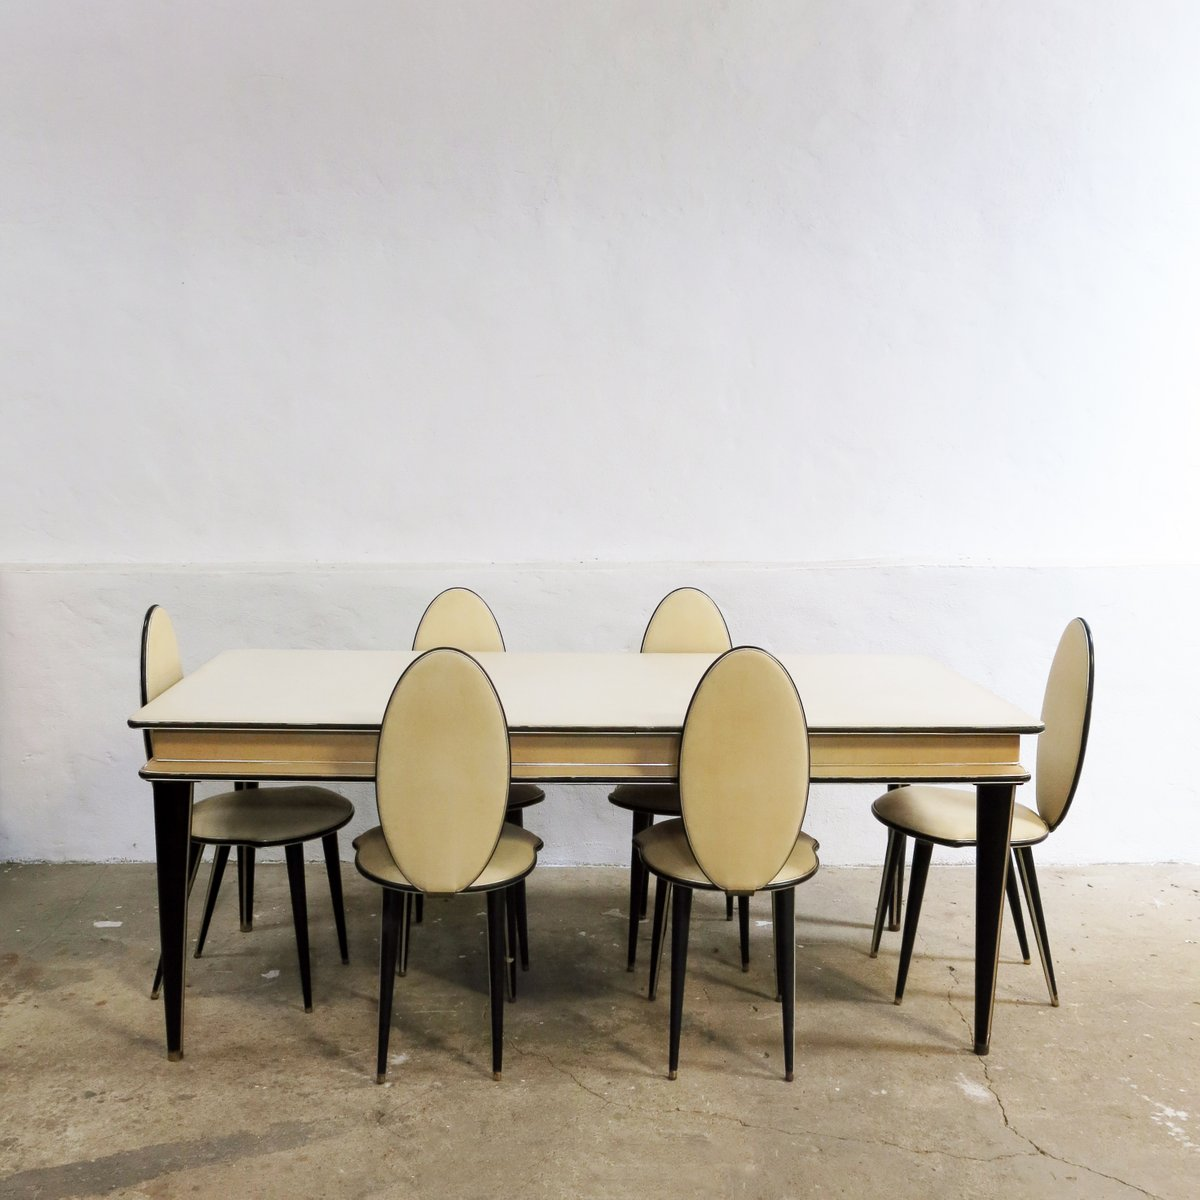 Captivating Mid Century Dining Set By Umberto Mascagni For Harrods, 1950s, Set Of 7